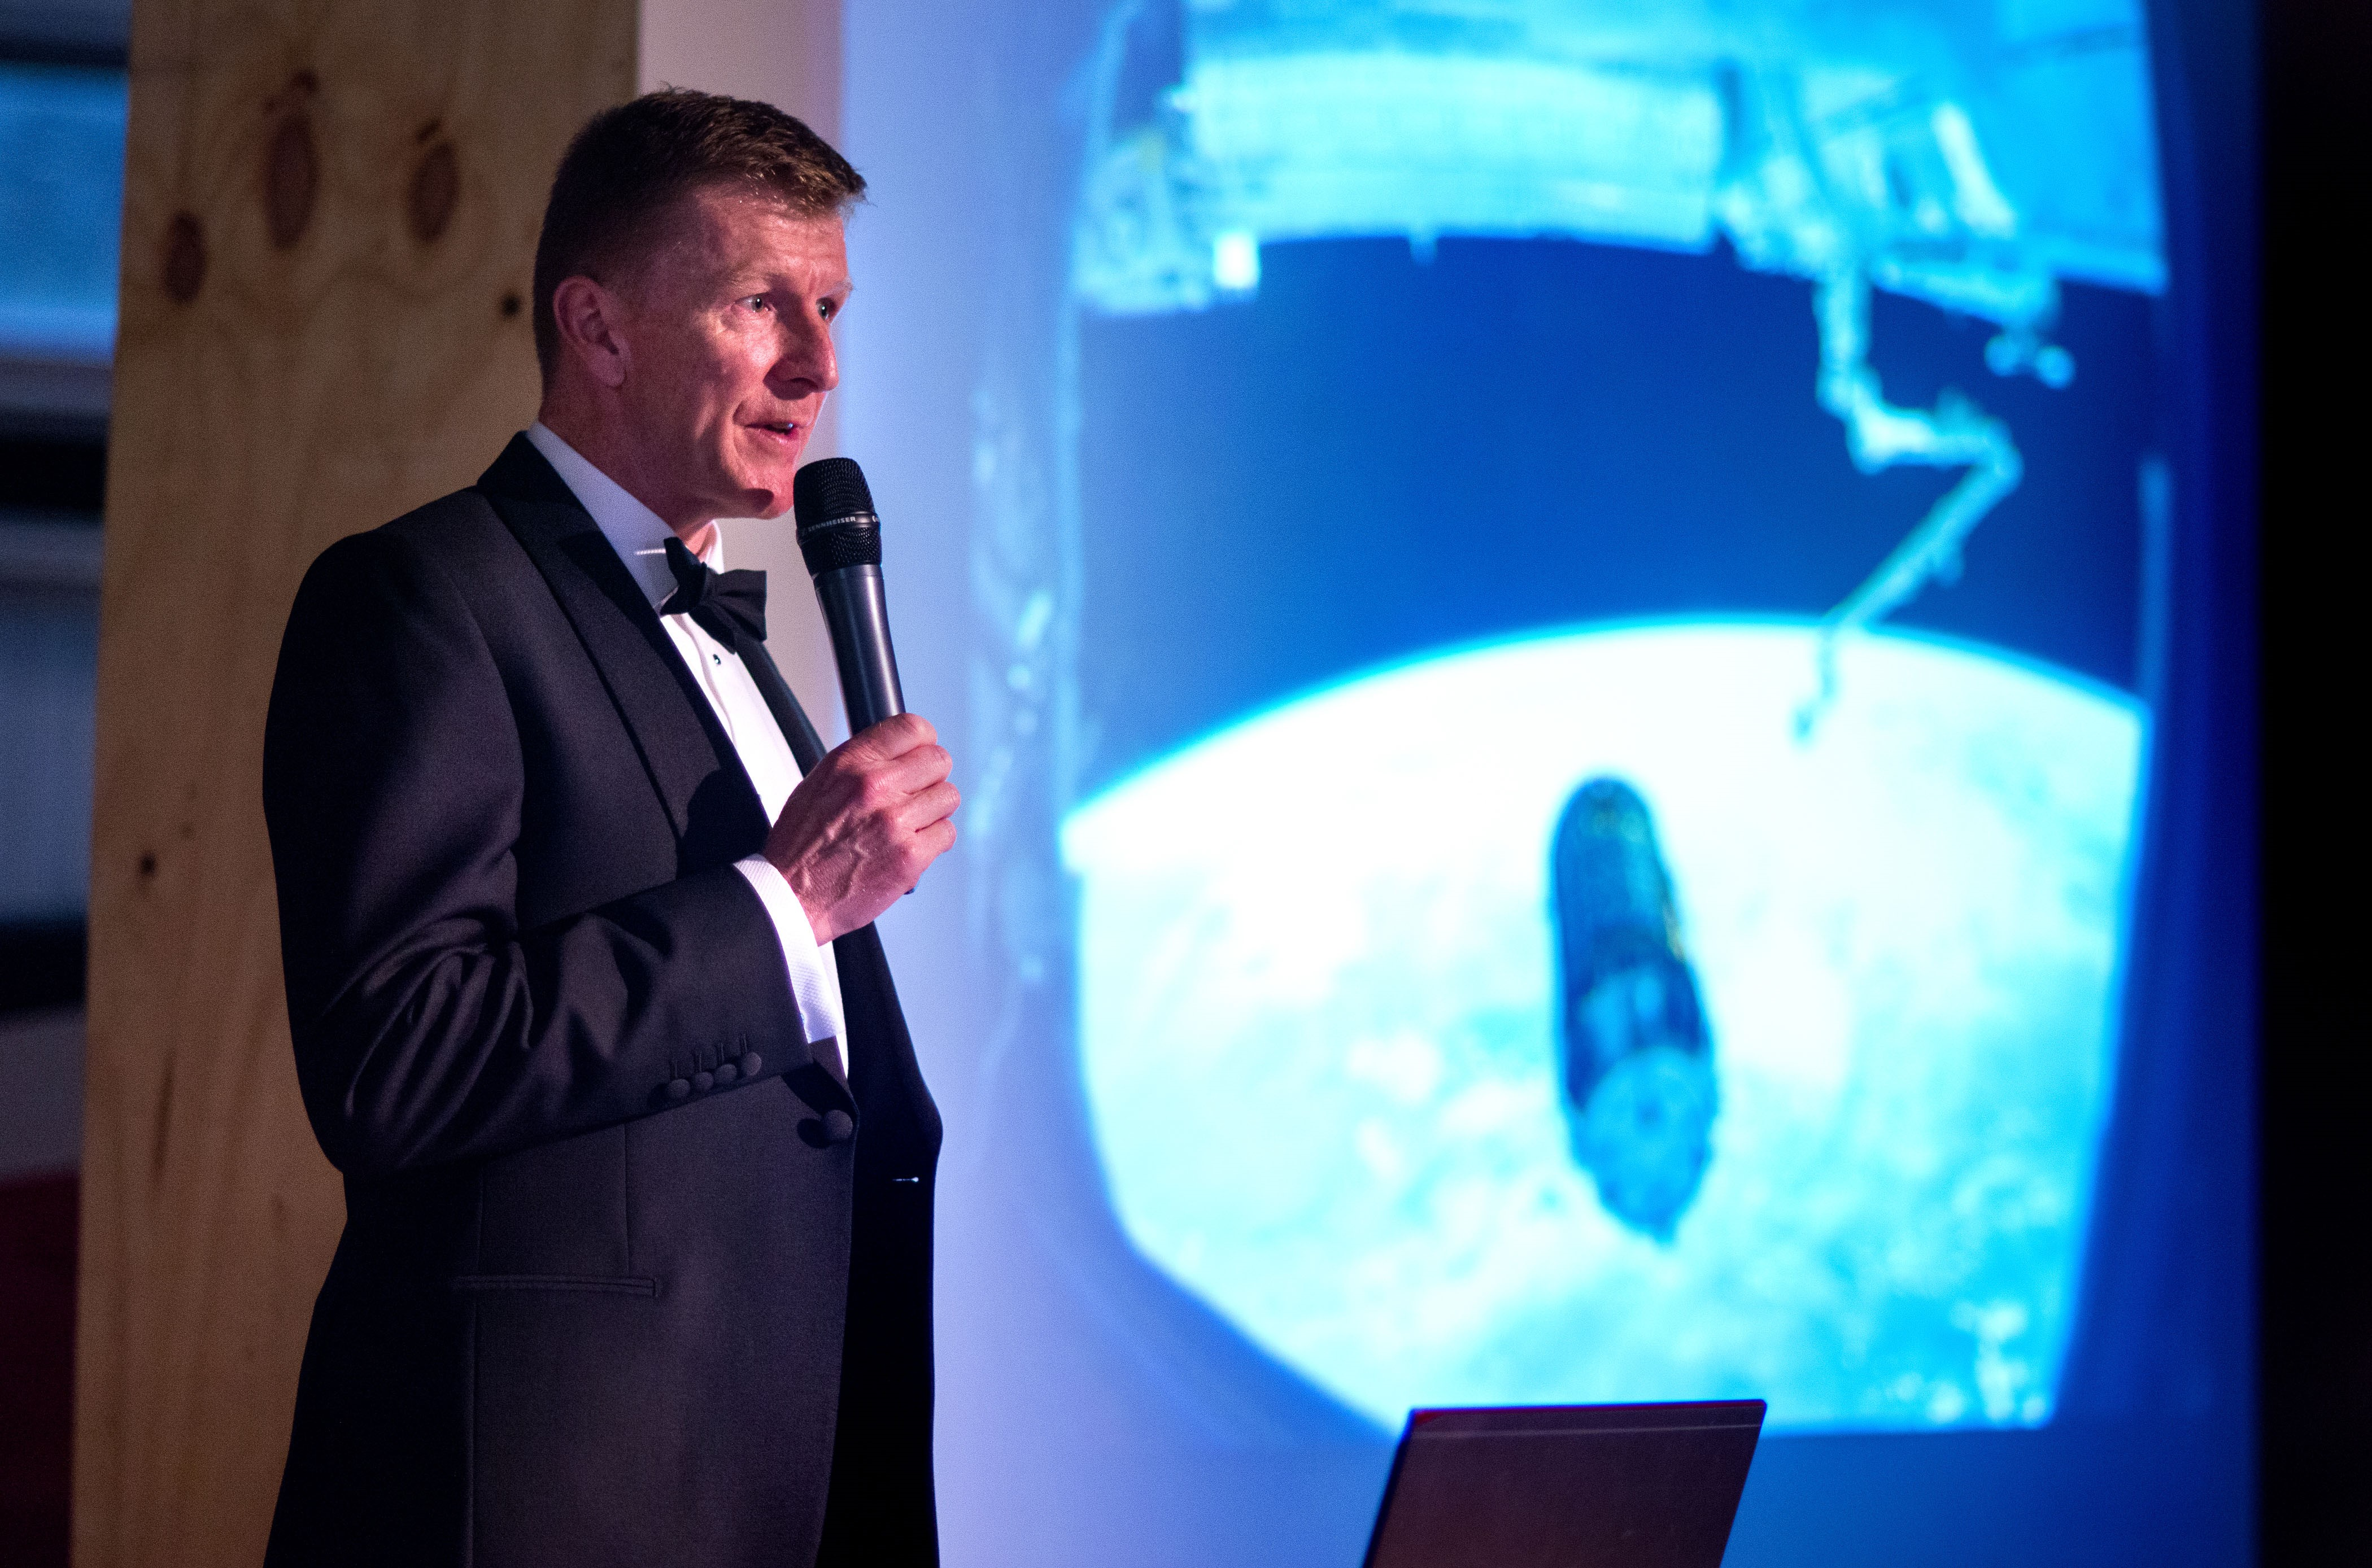 What's On | Tim Peake Wows Guests at Local Museum | Andover & Villages